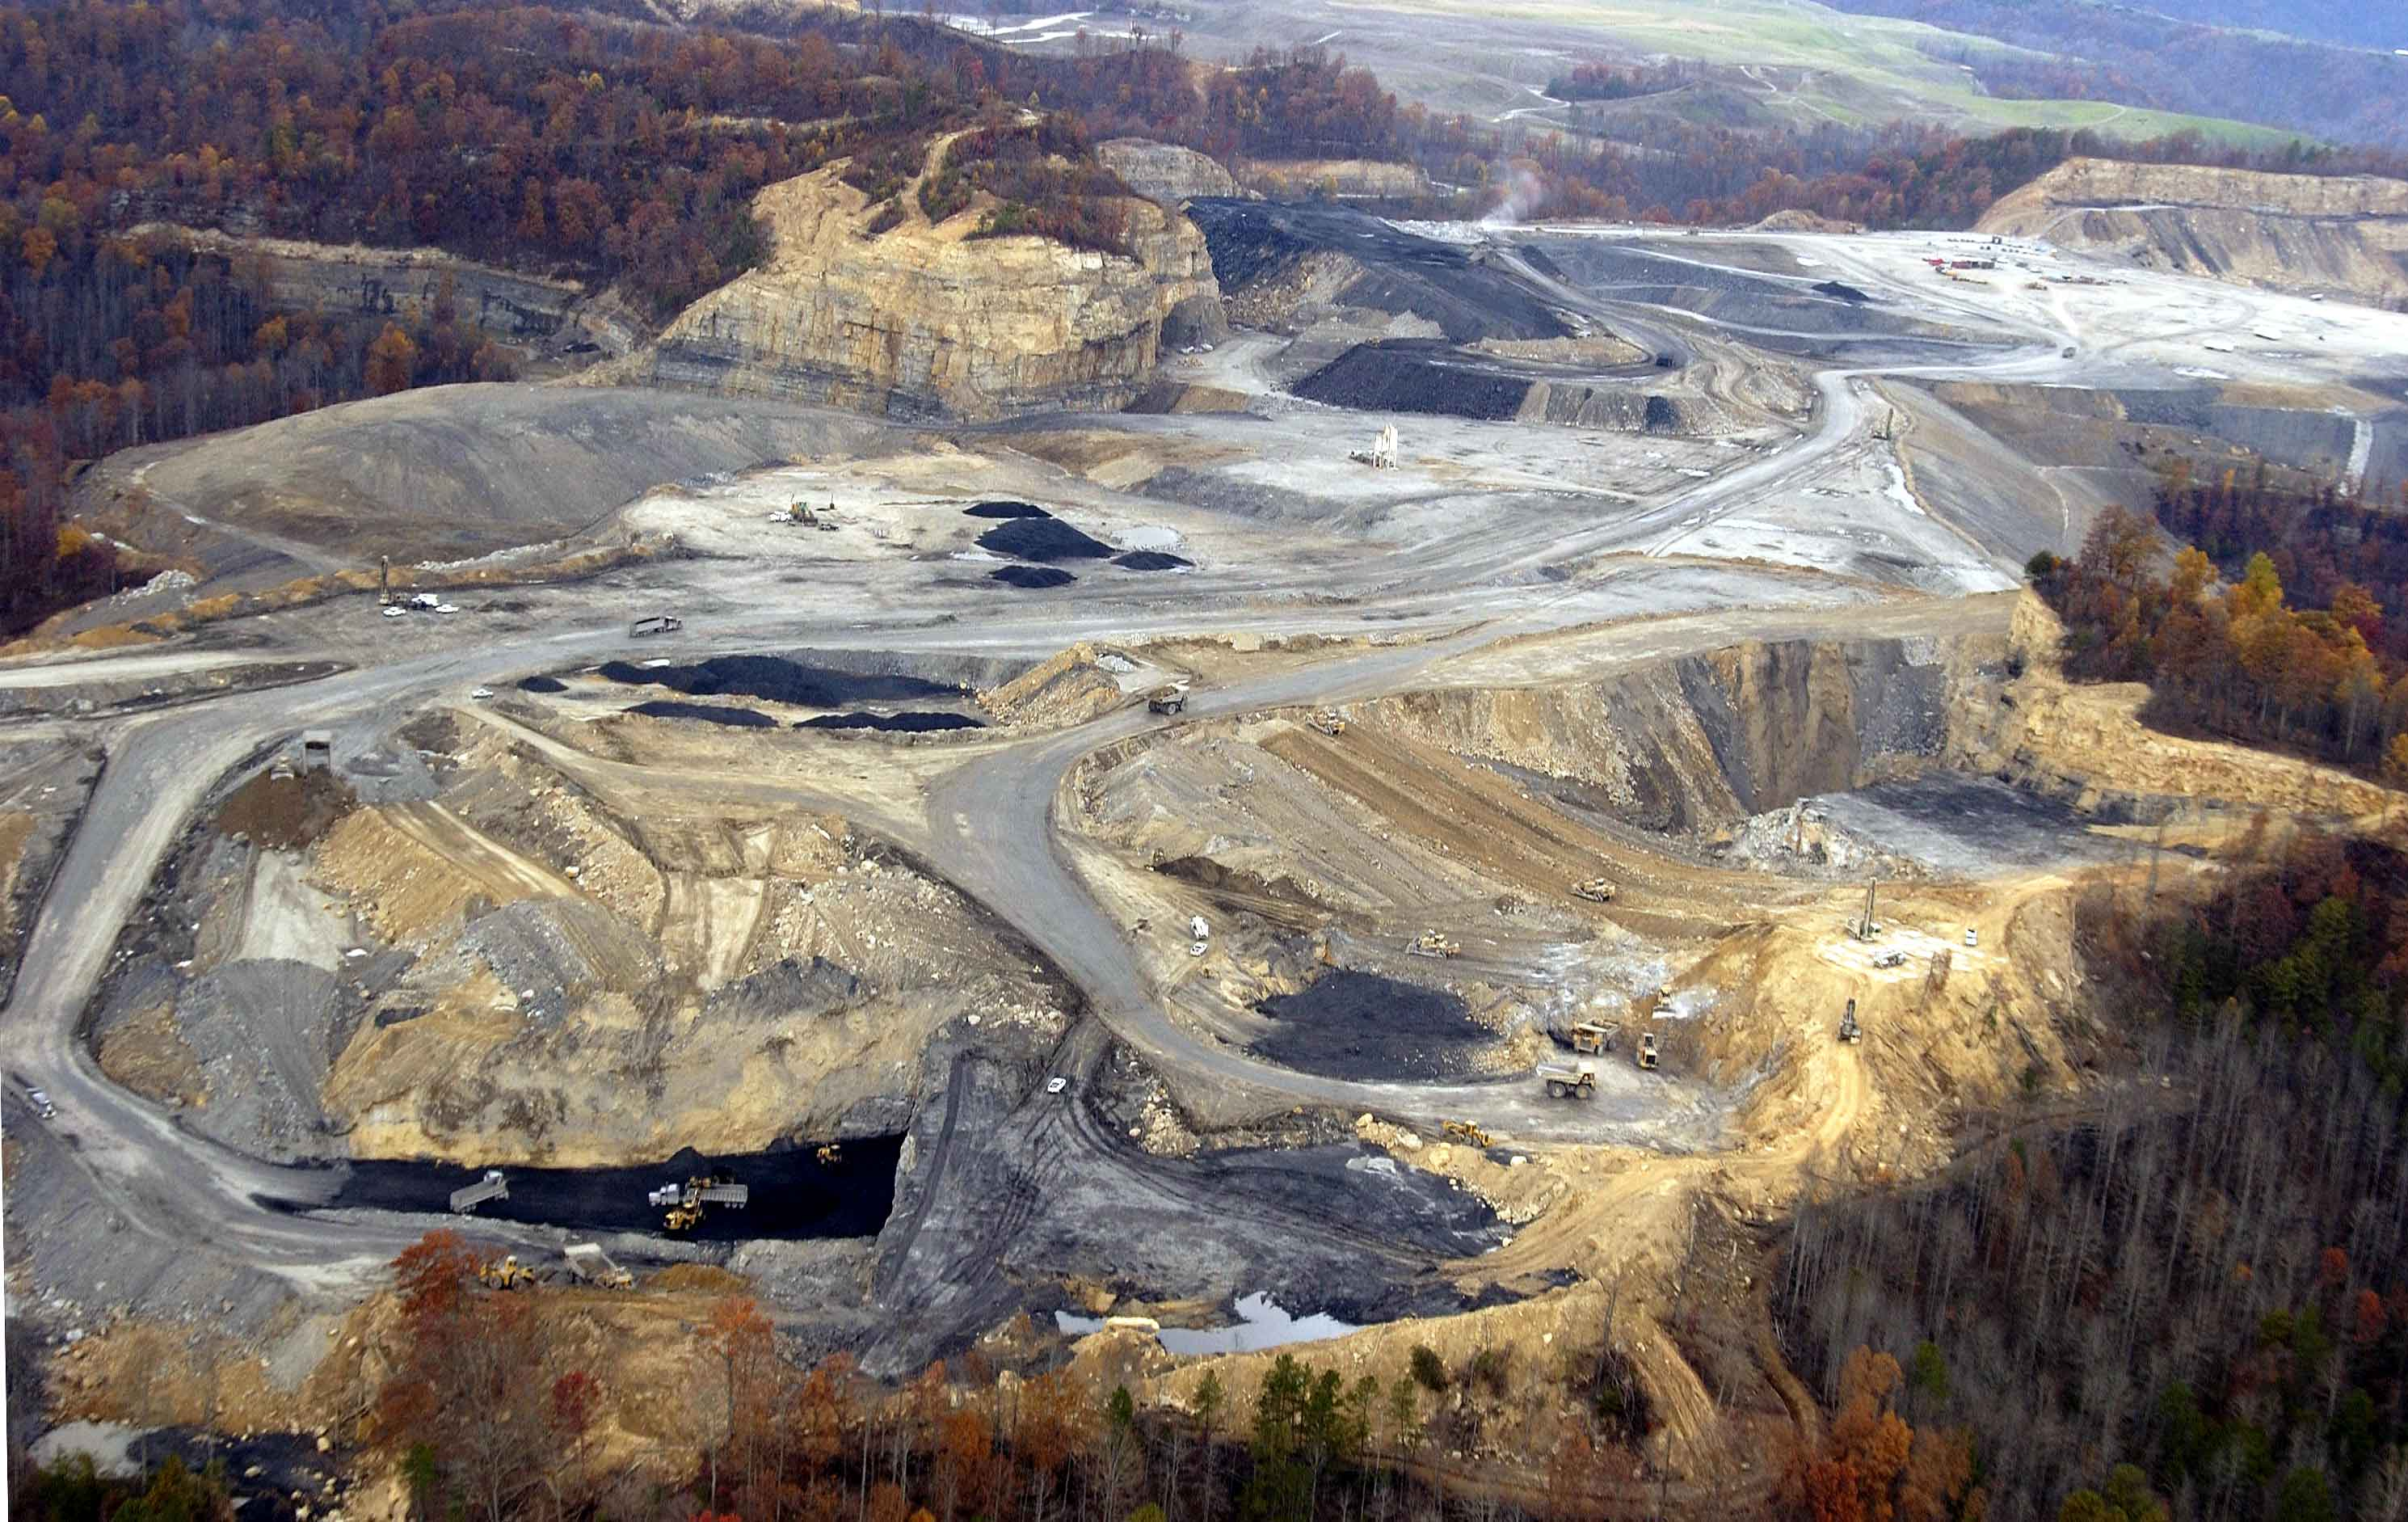 mountaintop removal mining Appalachian mountain advocates was founded to address the devastation association with coal mining over the last 15 years, we have led the legal battle against mountaintop removal mining.